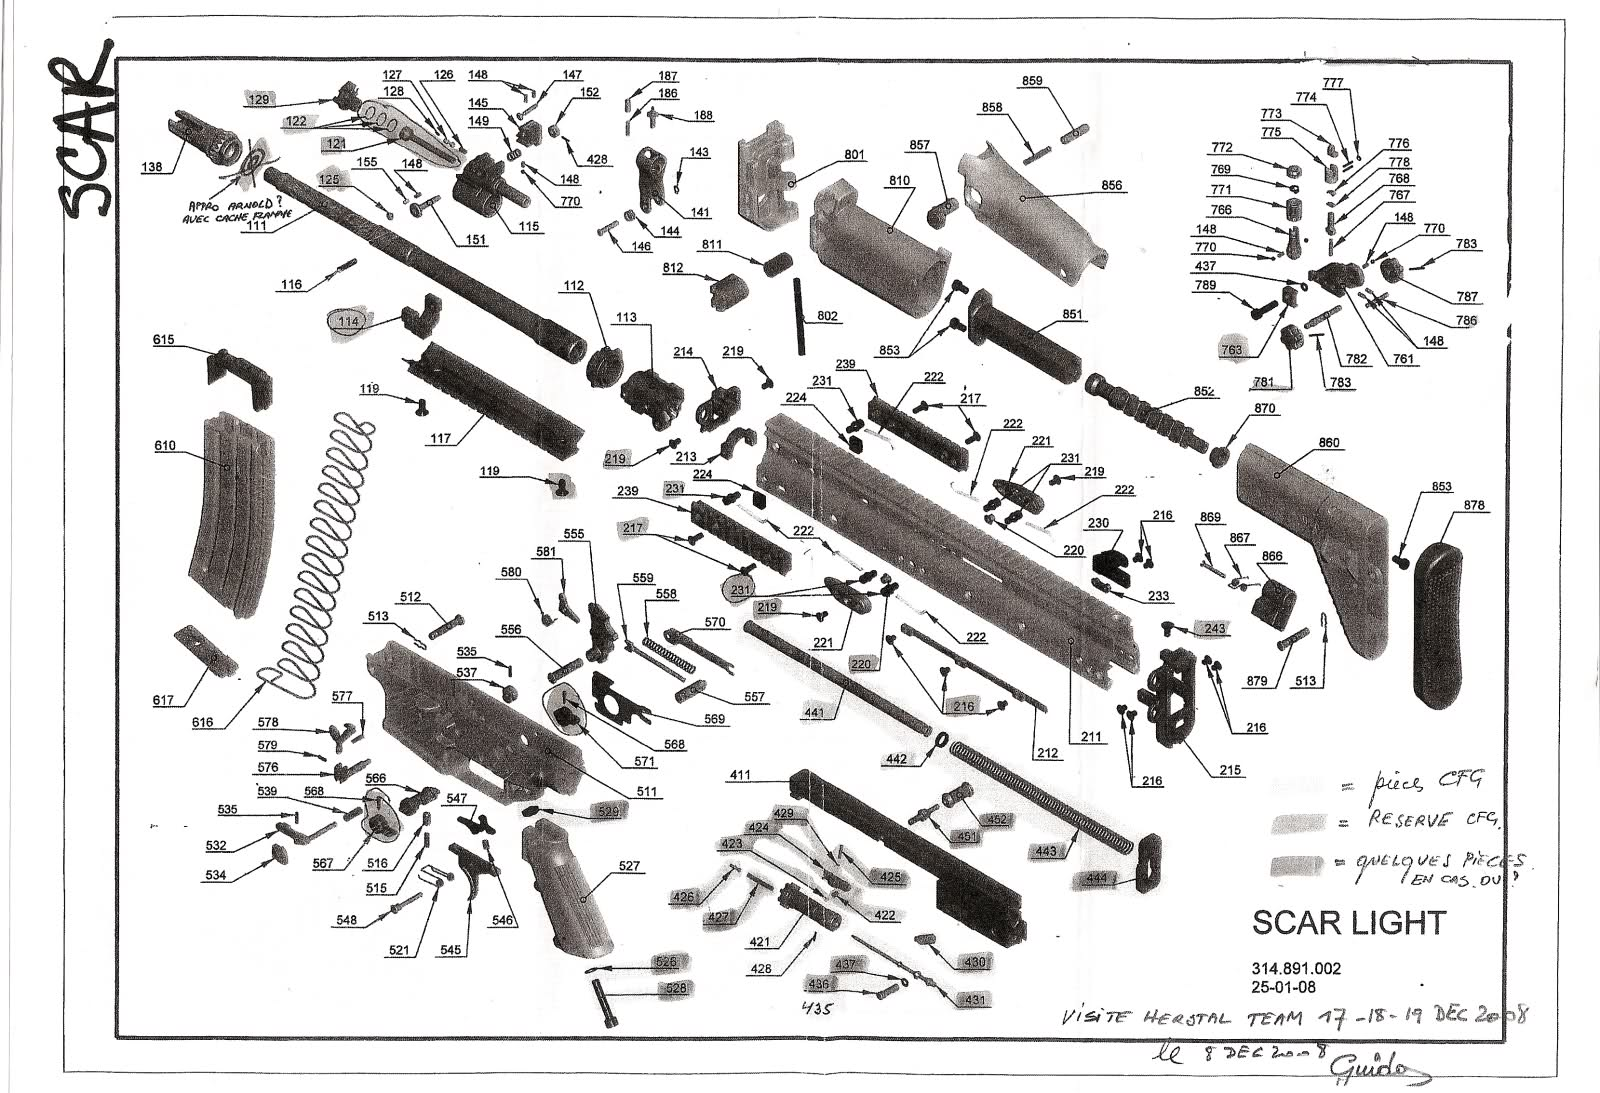 Colt 1911 Exploded Diagram Wire Data Schema Pistol Also With Parts Ar 15 Free Engine Image For User Defender Grips